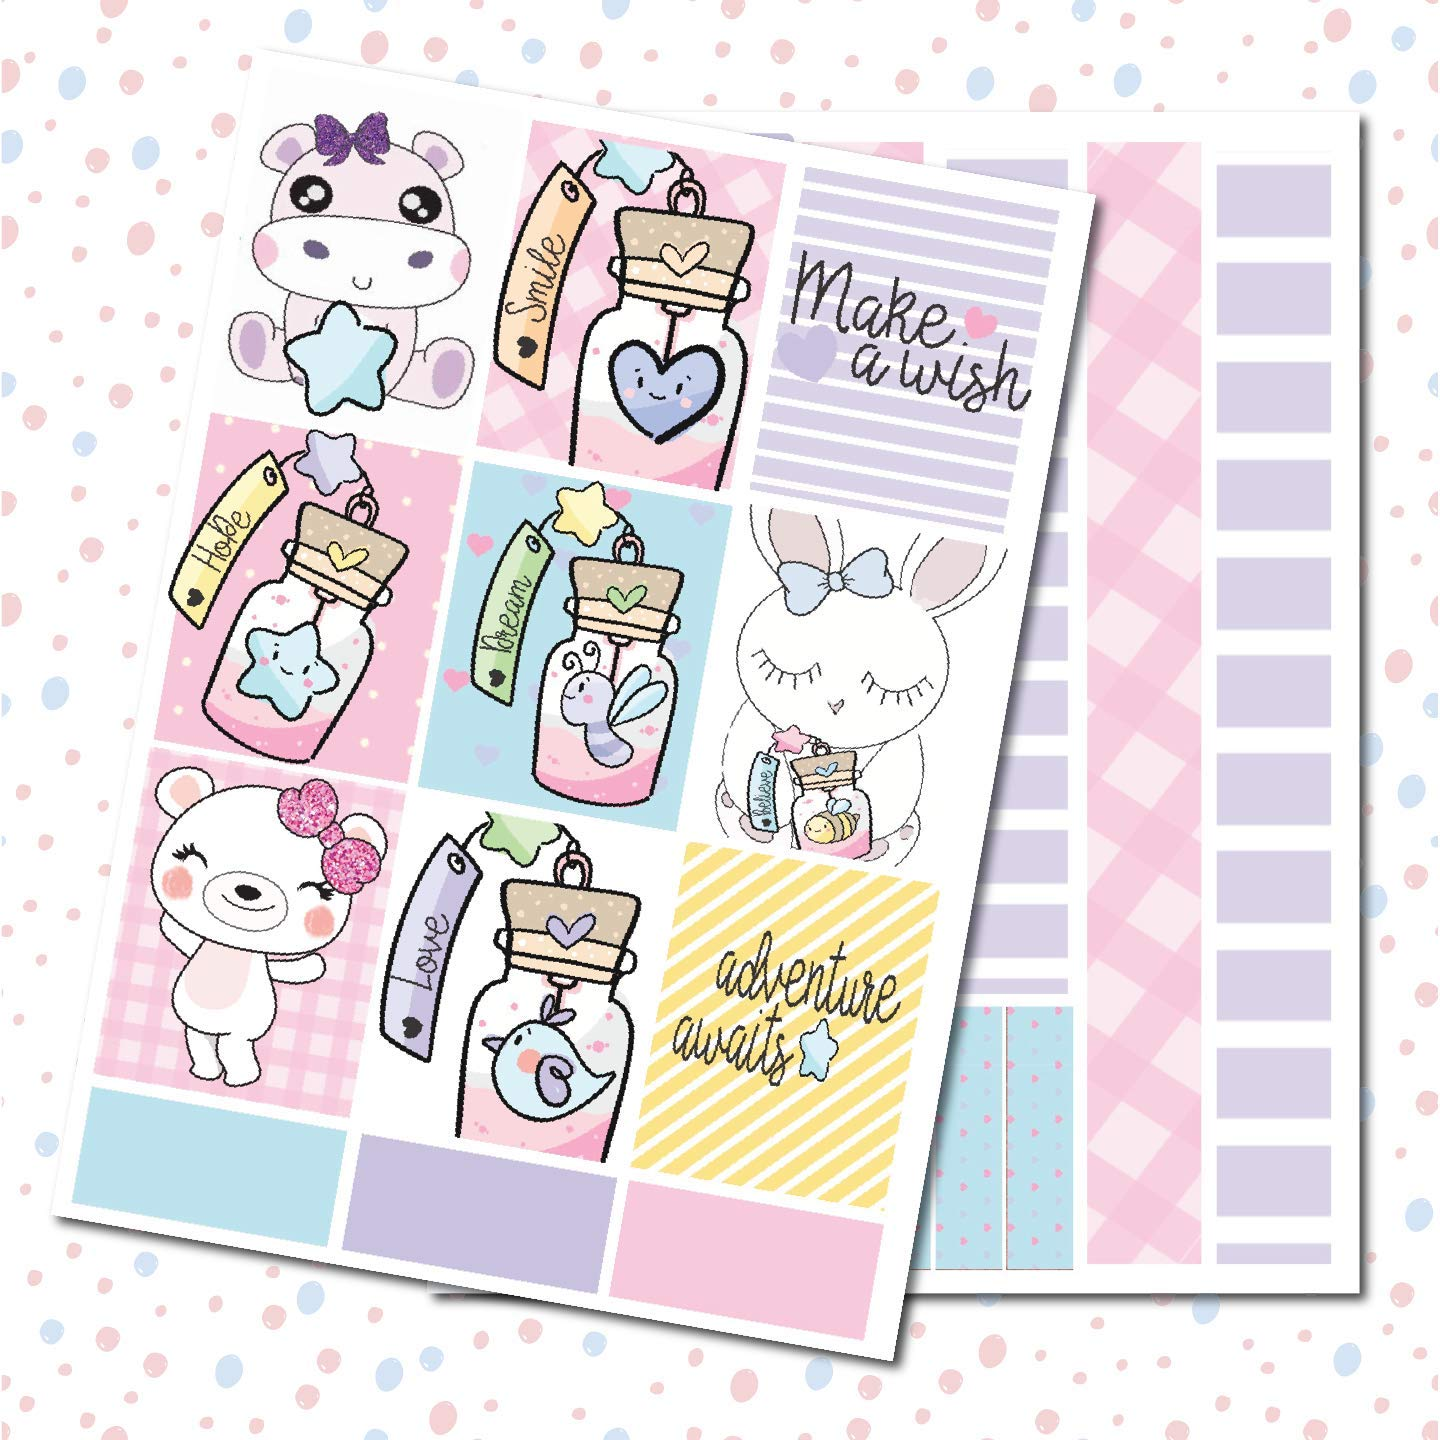 Student Life Planner Sticker Kit Message In A Bottle on matte removable sticker paper.